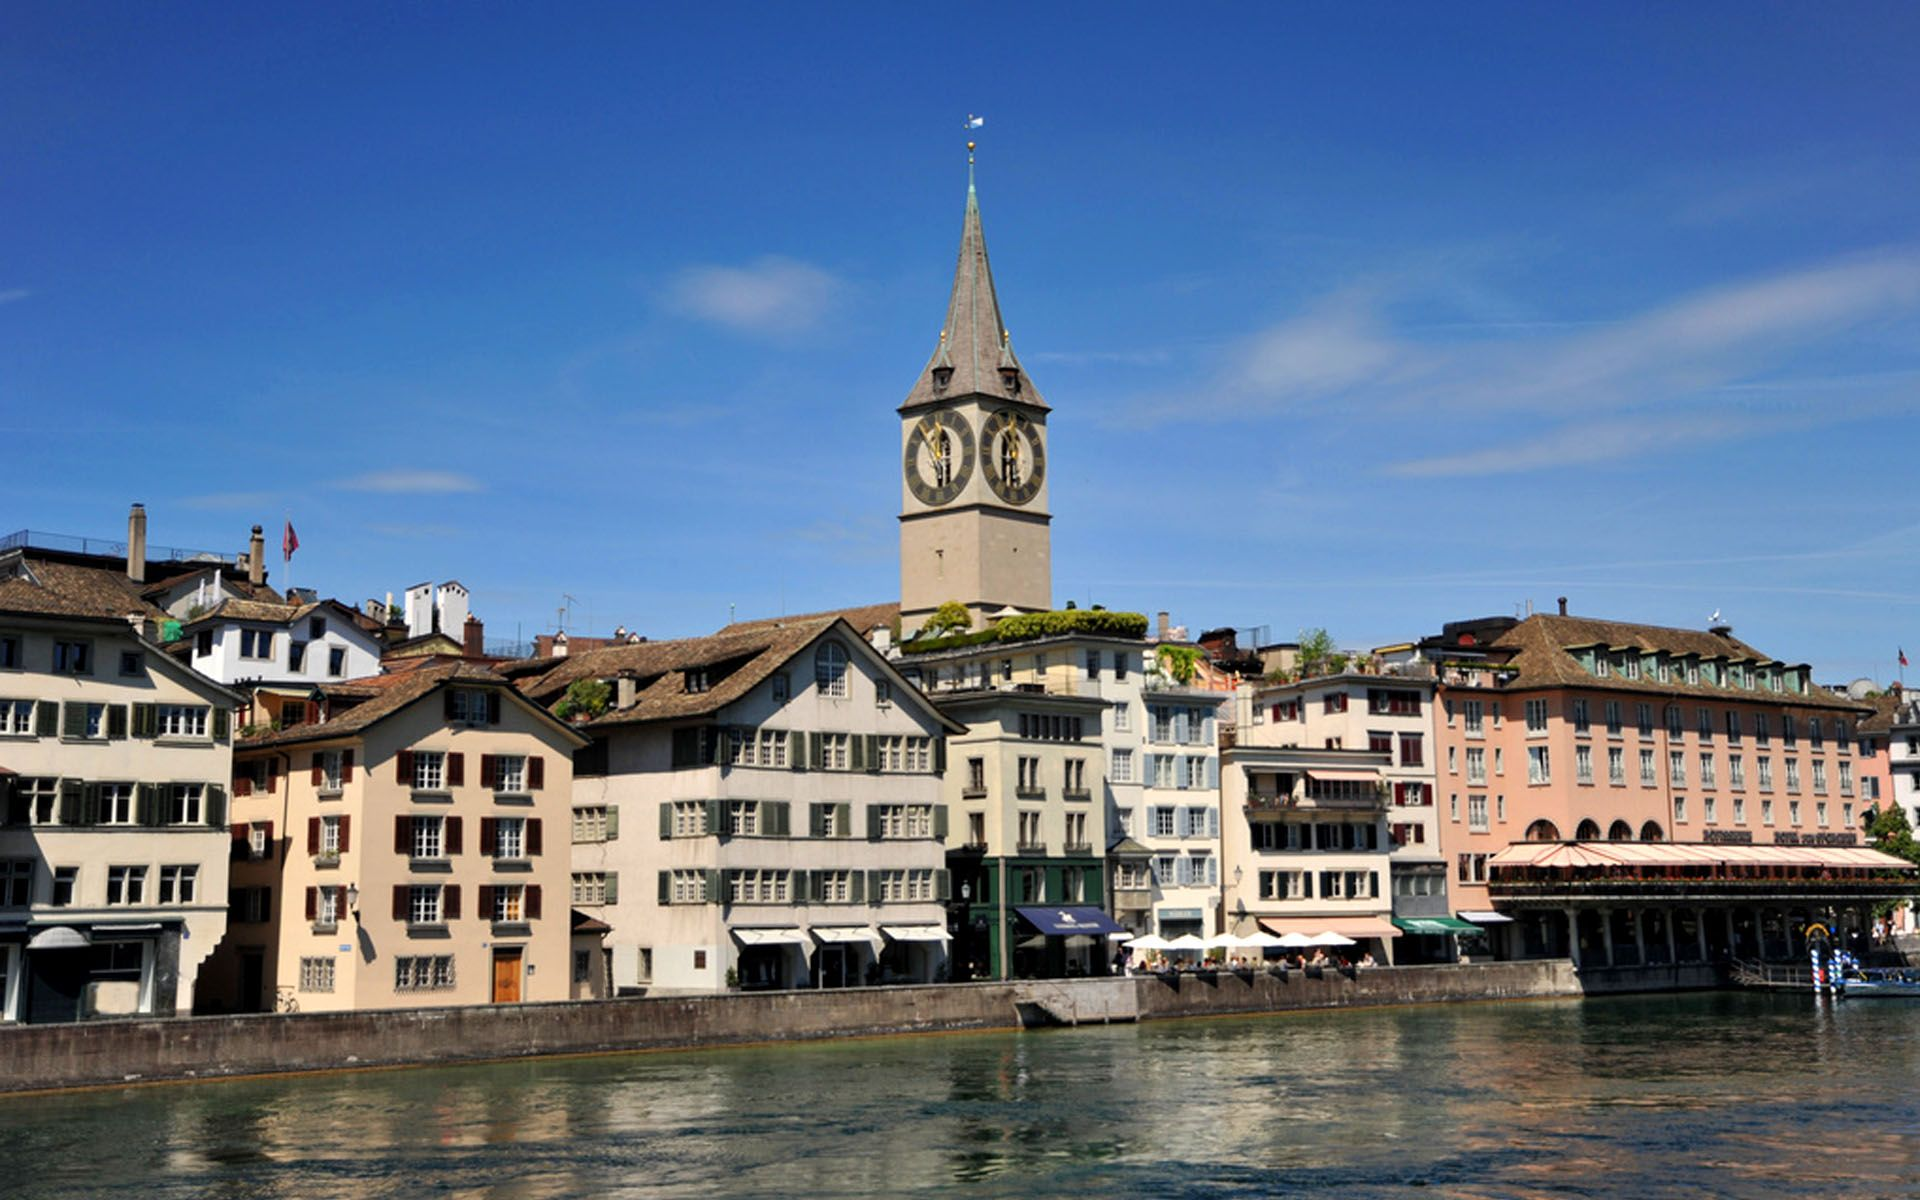 zurich-st-peter-church-1920x1200